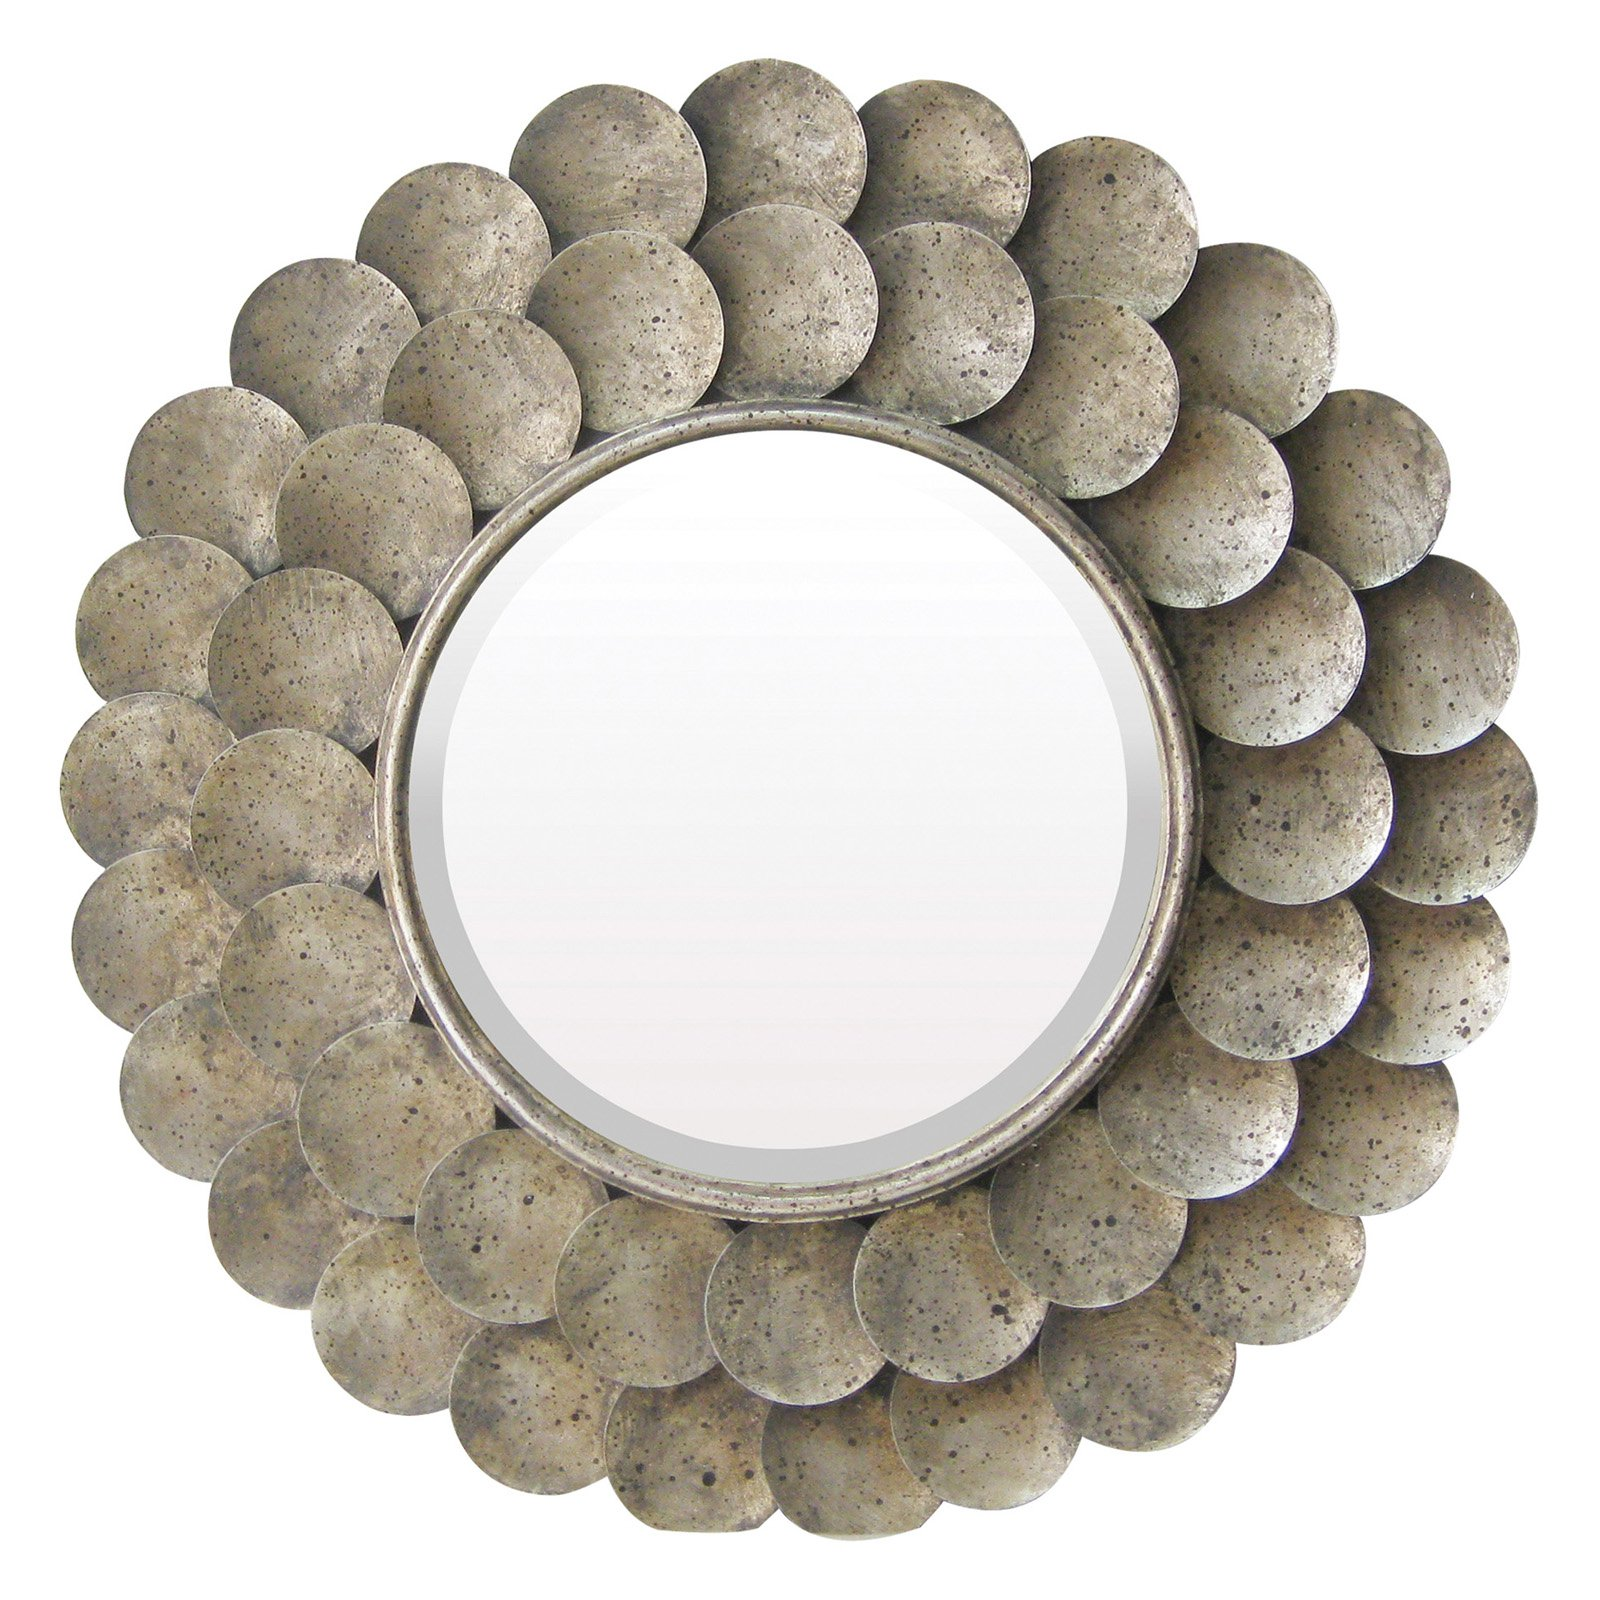 Sterling Harolds Grange Circles Wall Mirror - 36 diam. in.